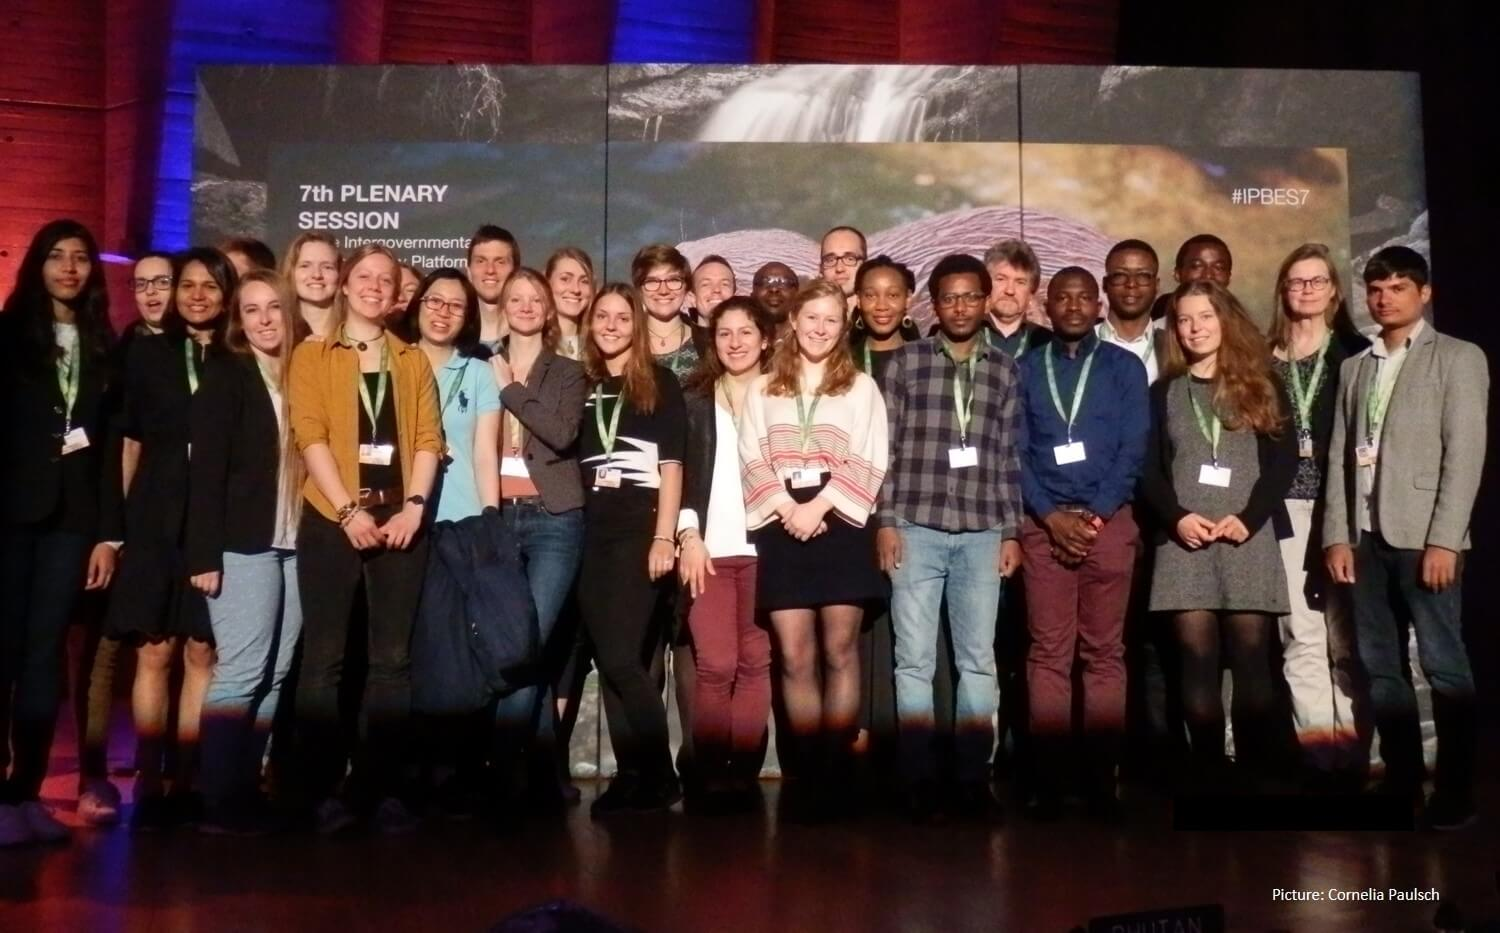 Diary: GCE At IPBES-7 (29-04-19 To 04-05-19)